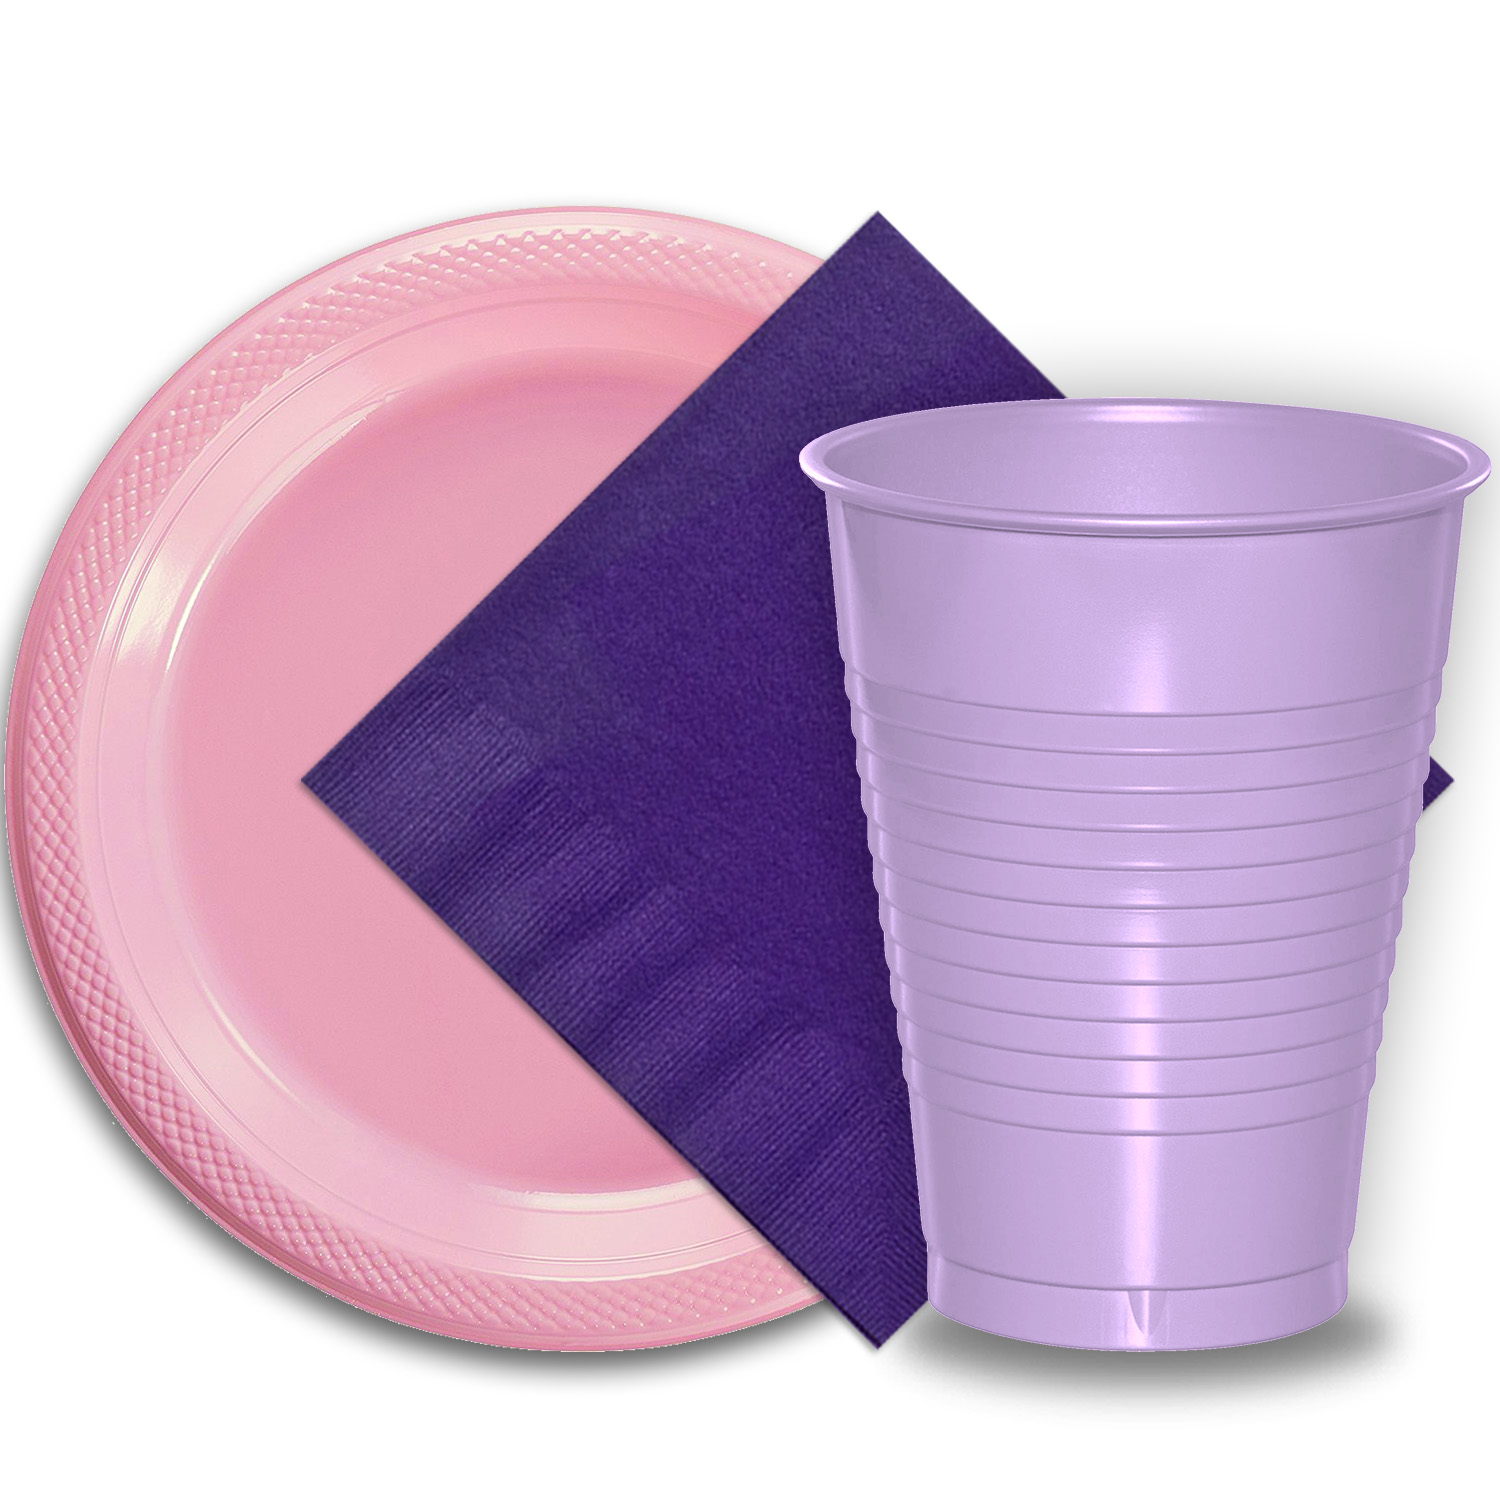 """50 Pink Plastic Plates (9""""), 50 Lavender Plastic Cups (12 oz.), and 50 Purple Paper Napkins, Dazzelling Colored Disposable Party Supplies Tableware Set for Fifty Guests."""